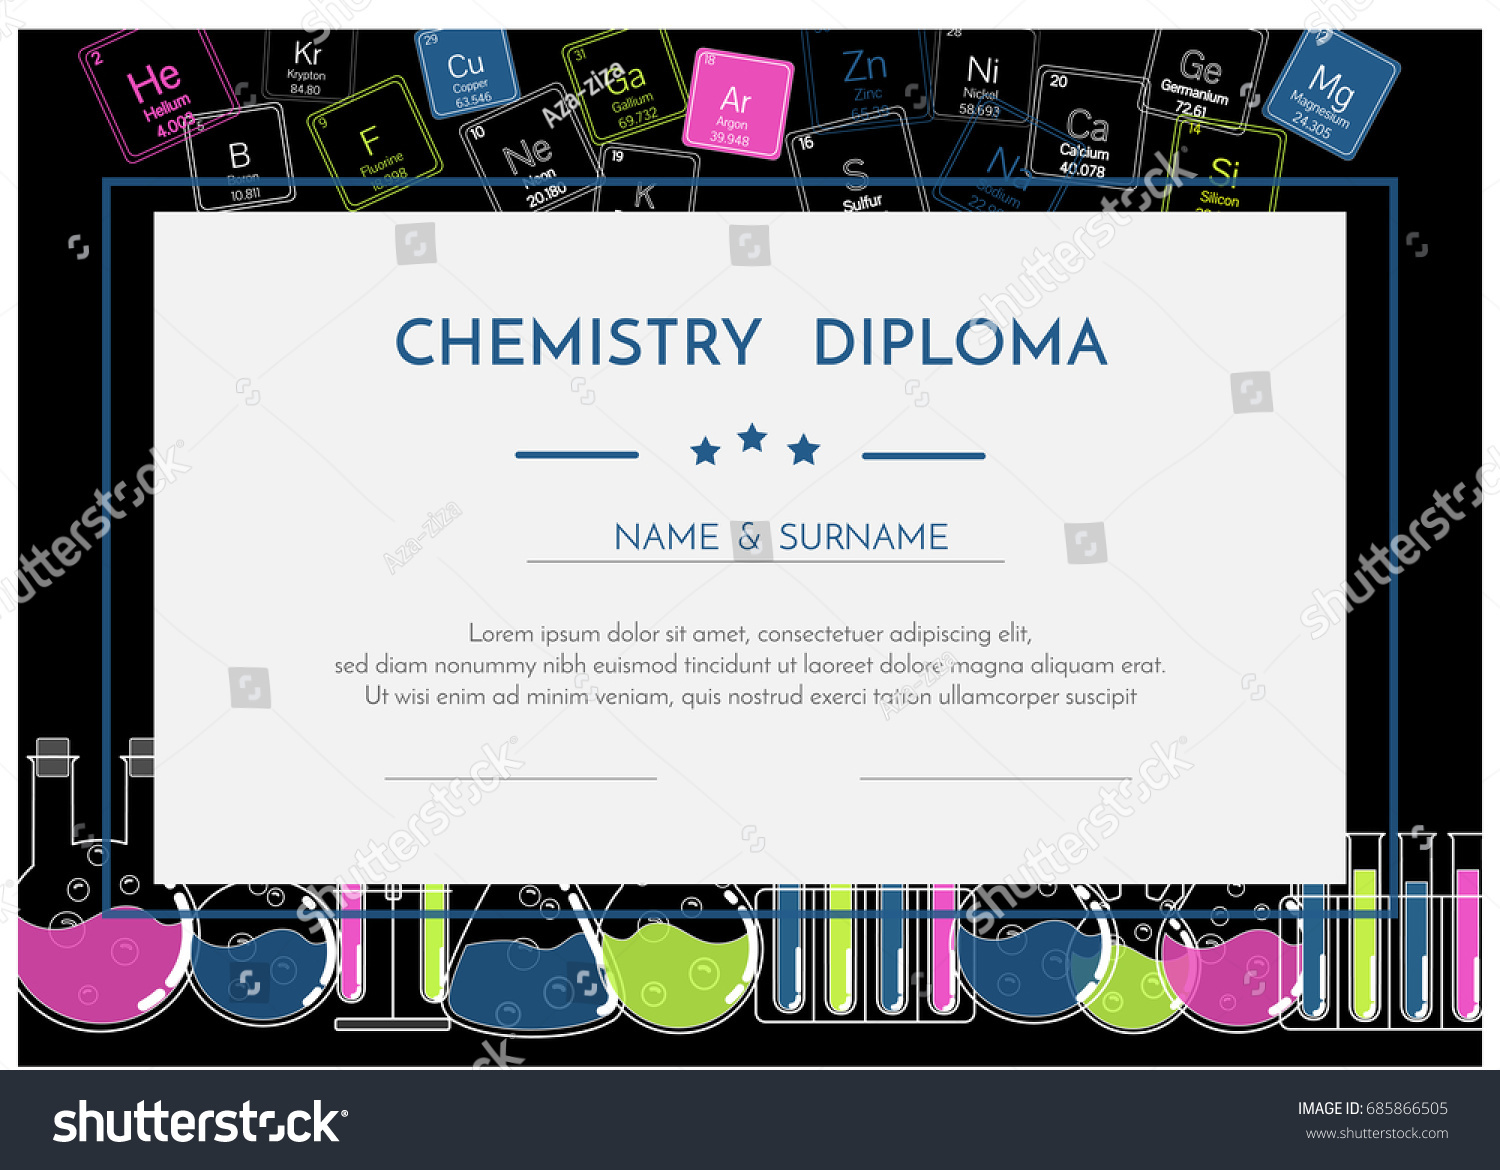 chemistry diploma certificate periodic system elements stock  chemistry diploma certificate periodic system elements stock vector 685866505 shutterstock